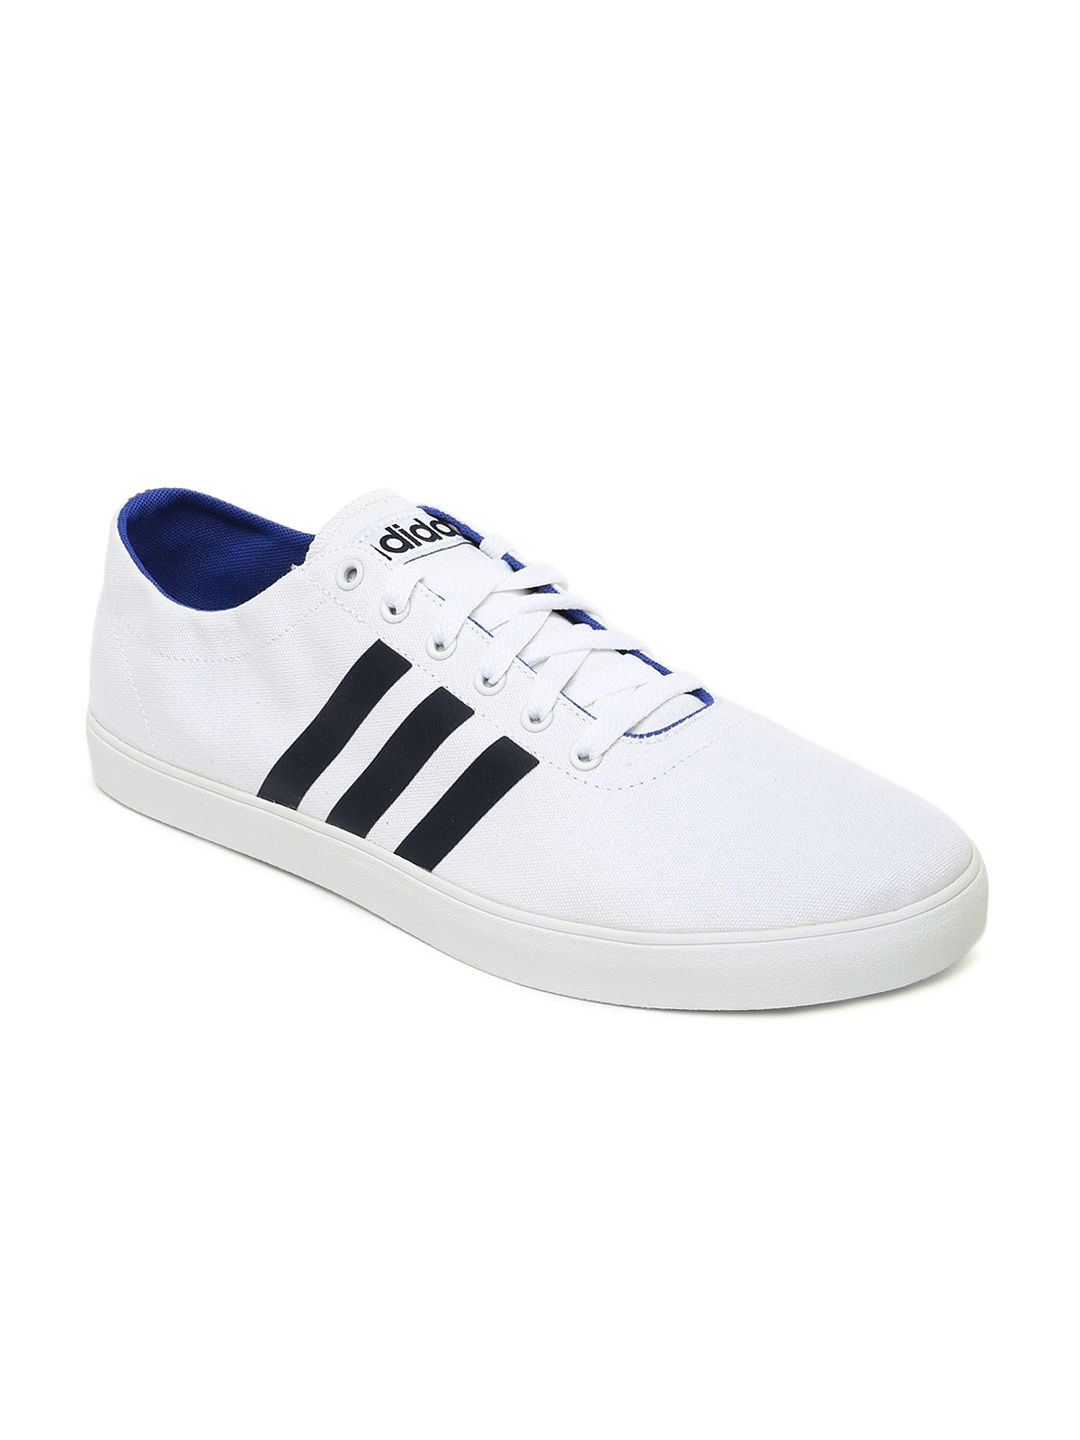 myntra adidas neo white easy vulc vs casual shoes